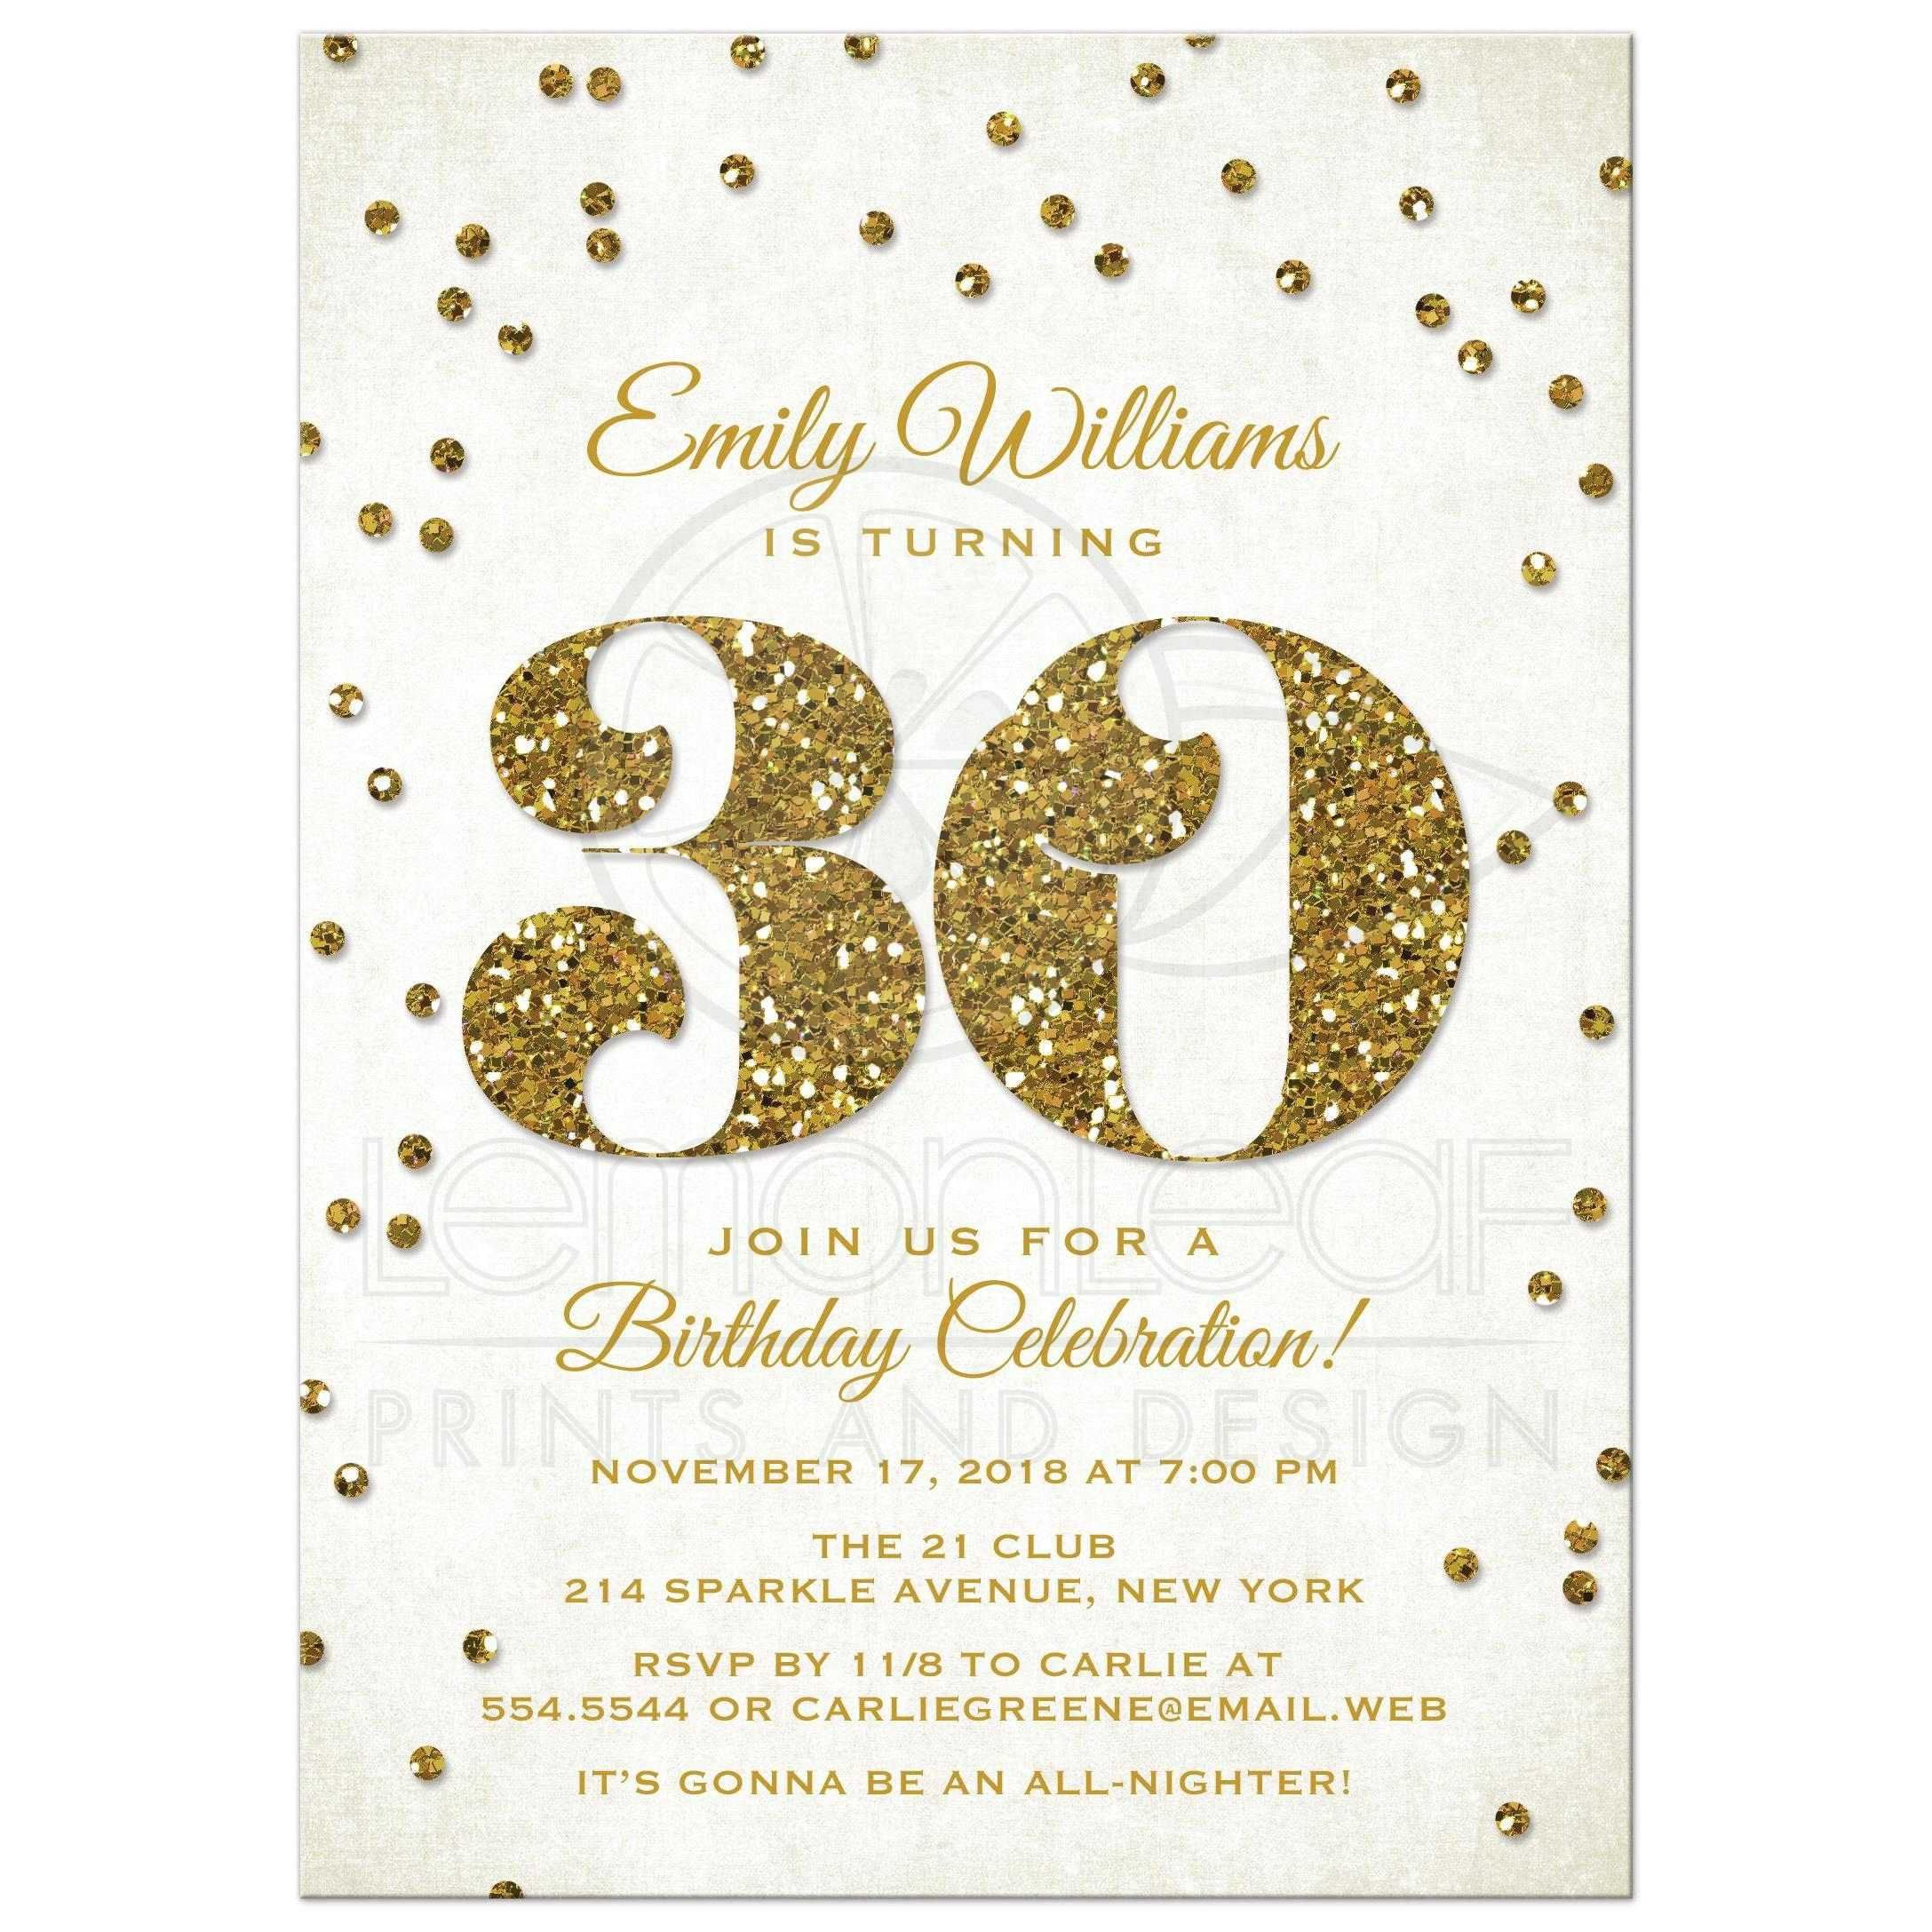 birthday invitation : 30th birthday invitation templates - Superb ...